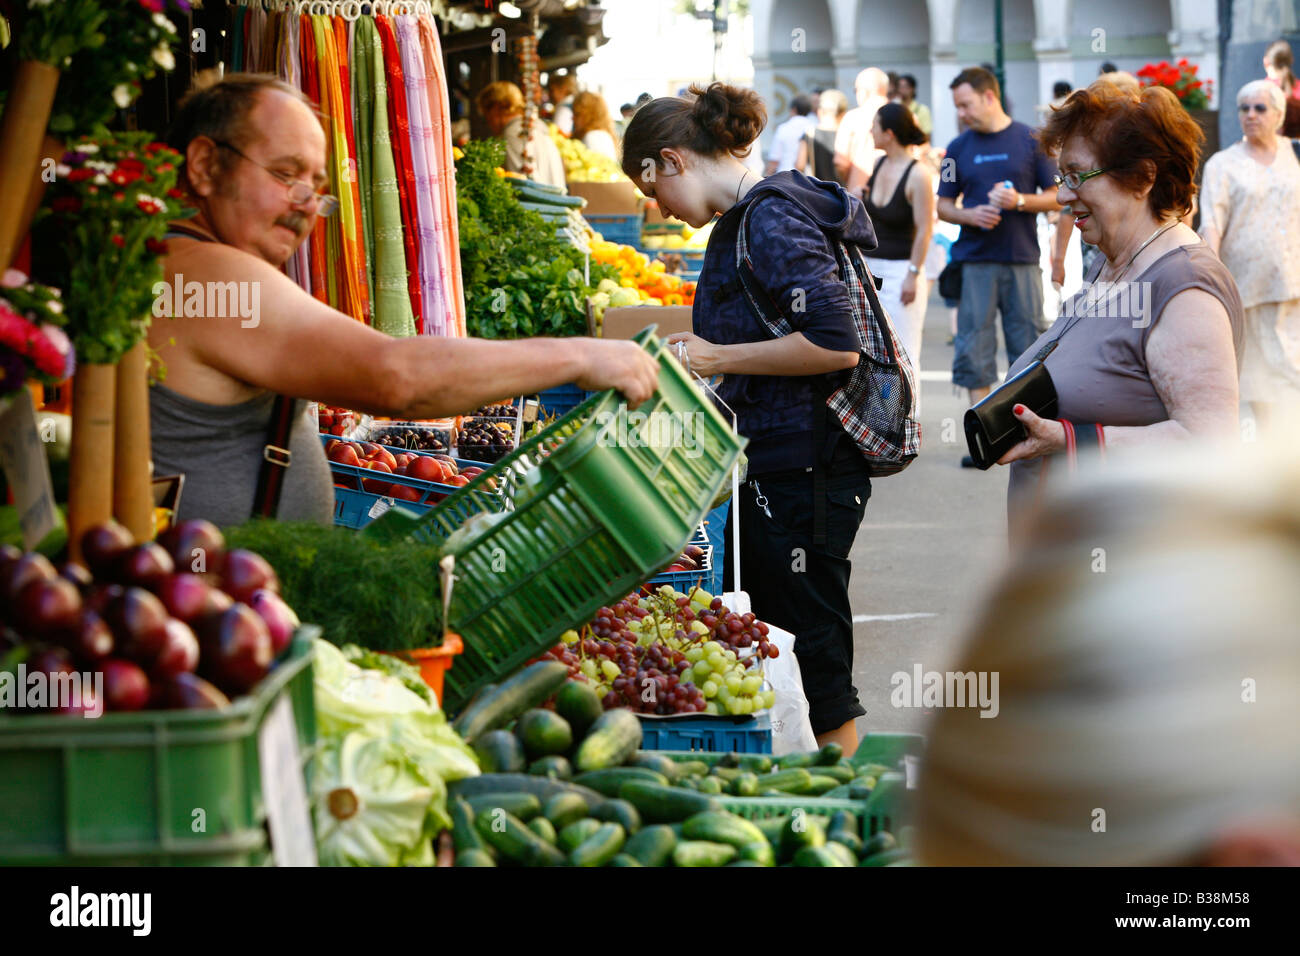 Aug 2008 - People at Havelska Market Stare Mesto Prague Czech Republic - Stock Image